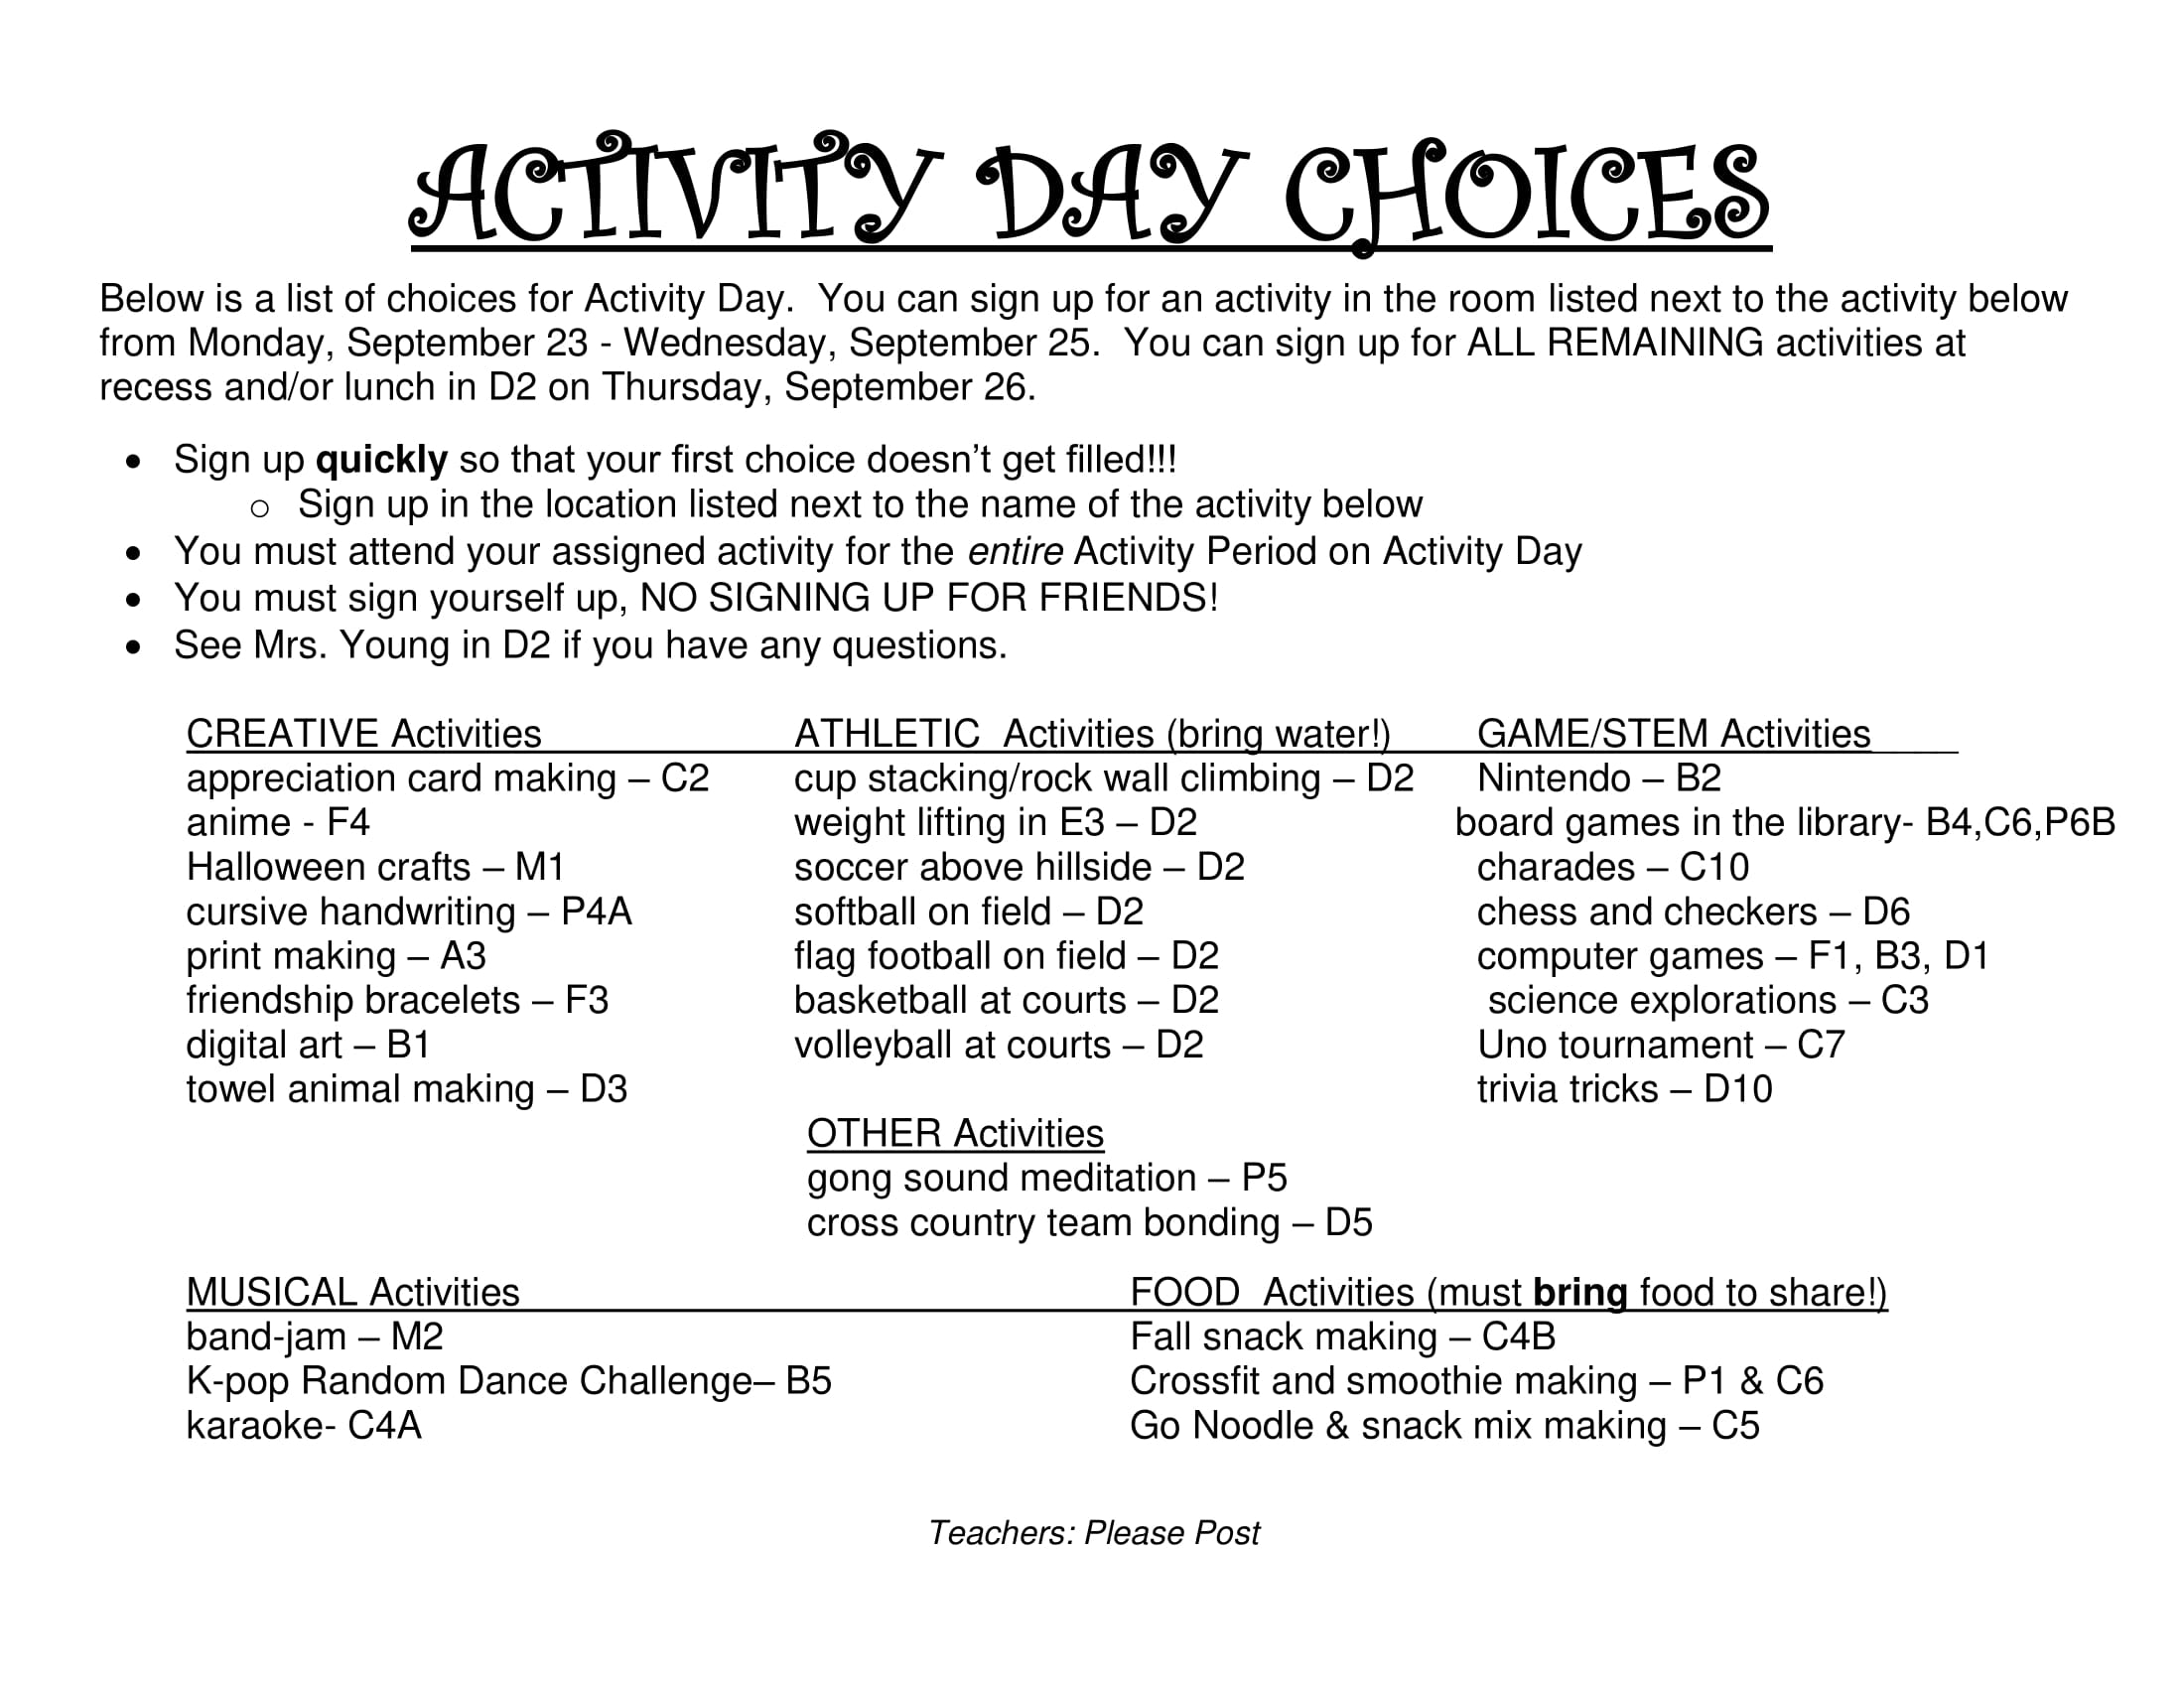 activity day choices for 10/04/2019